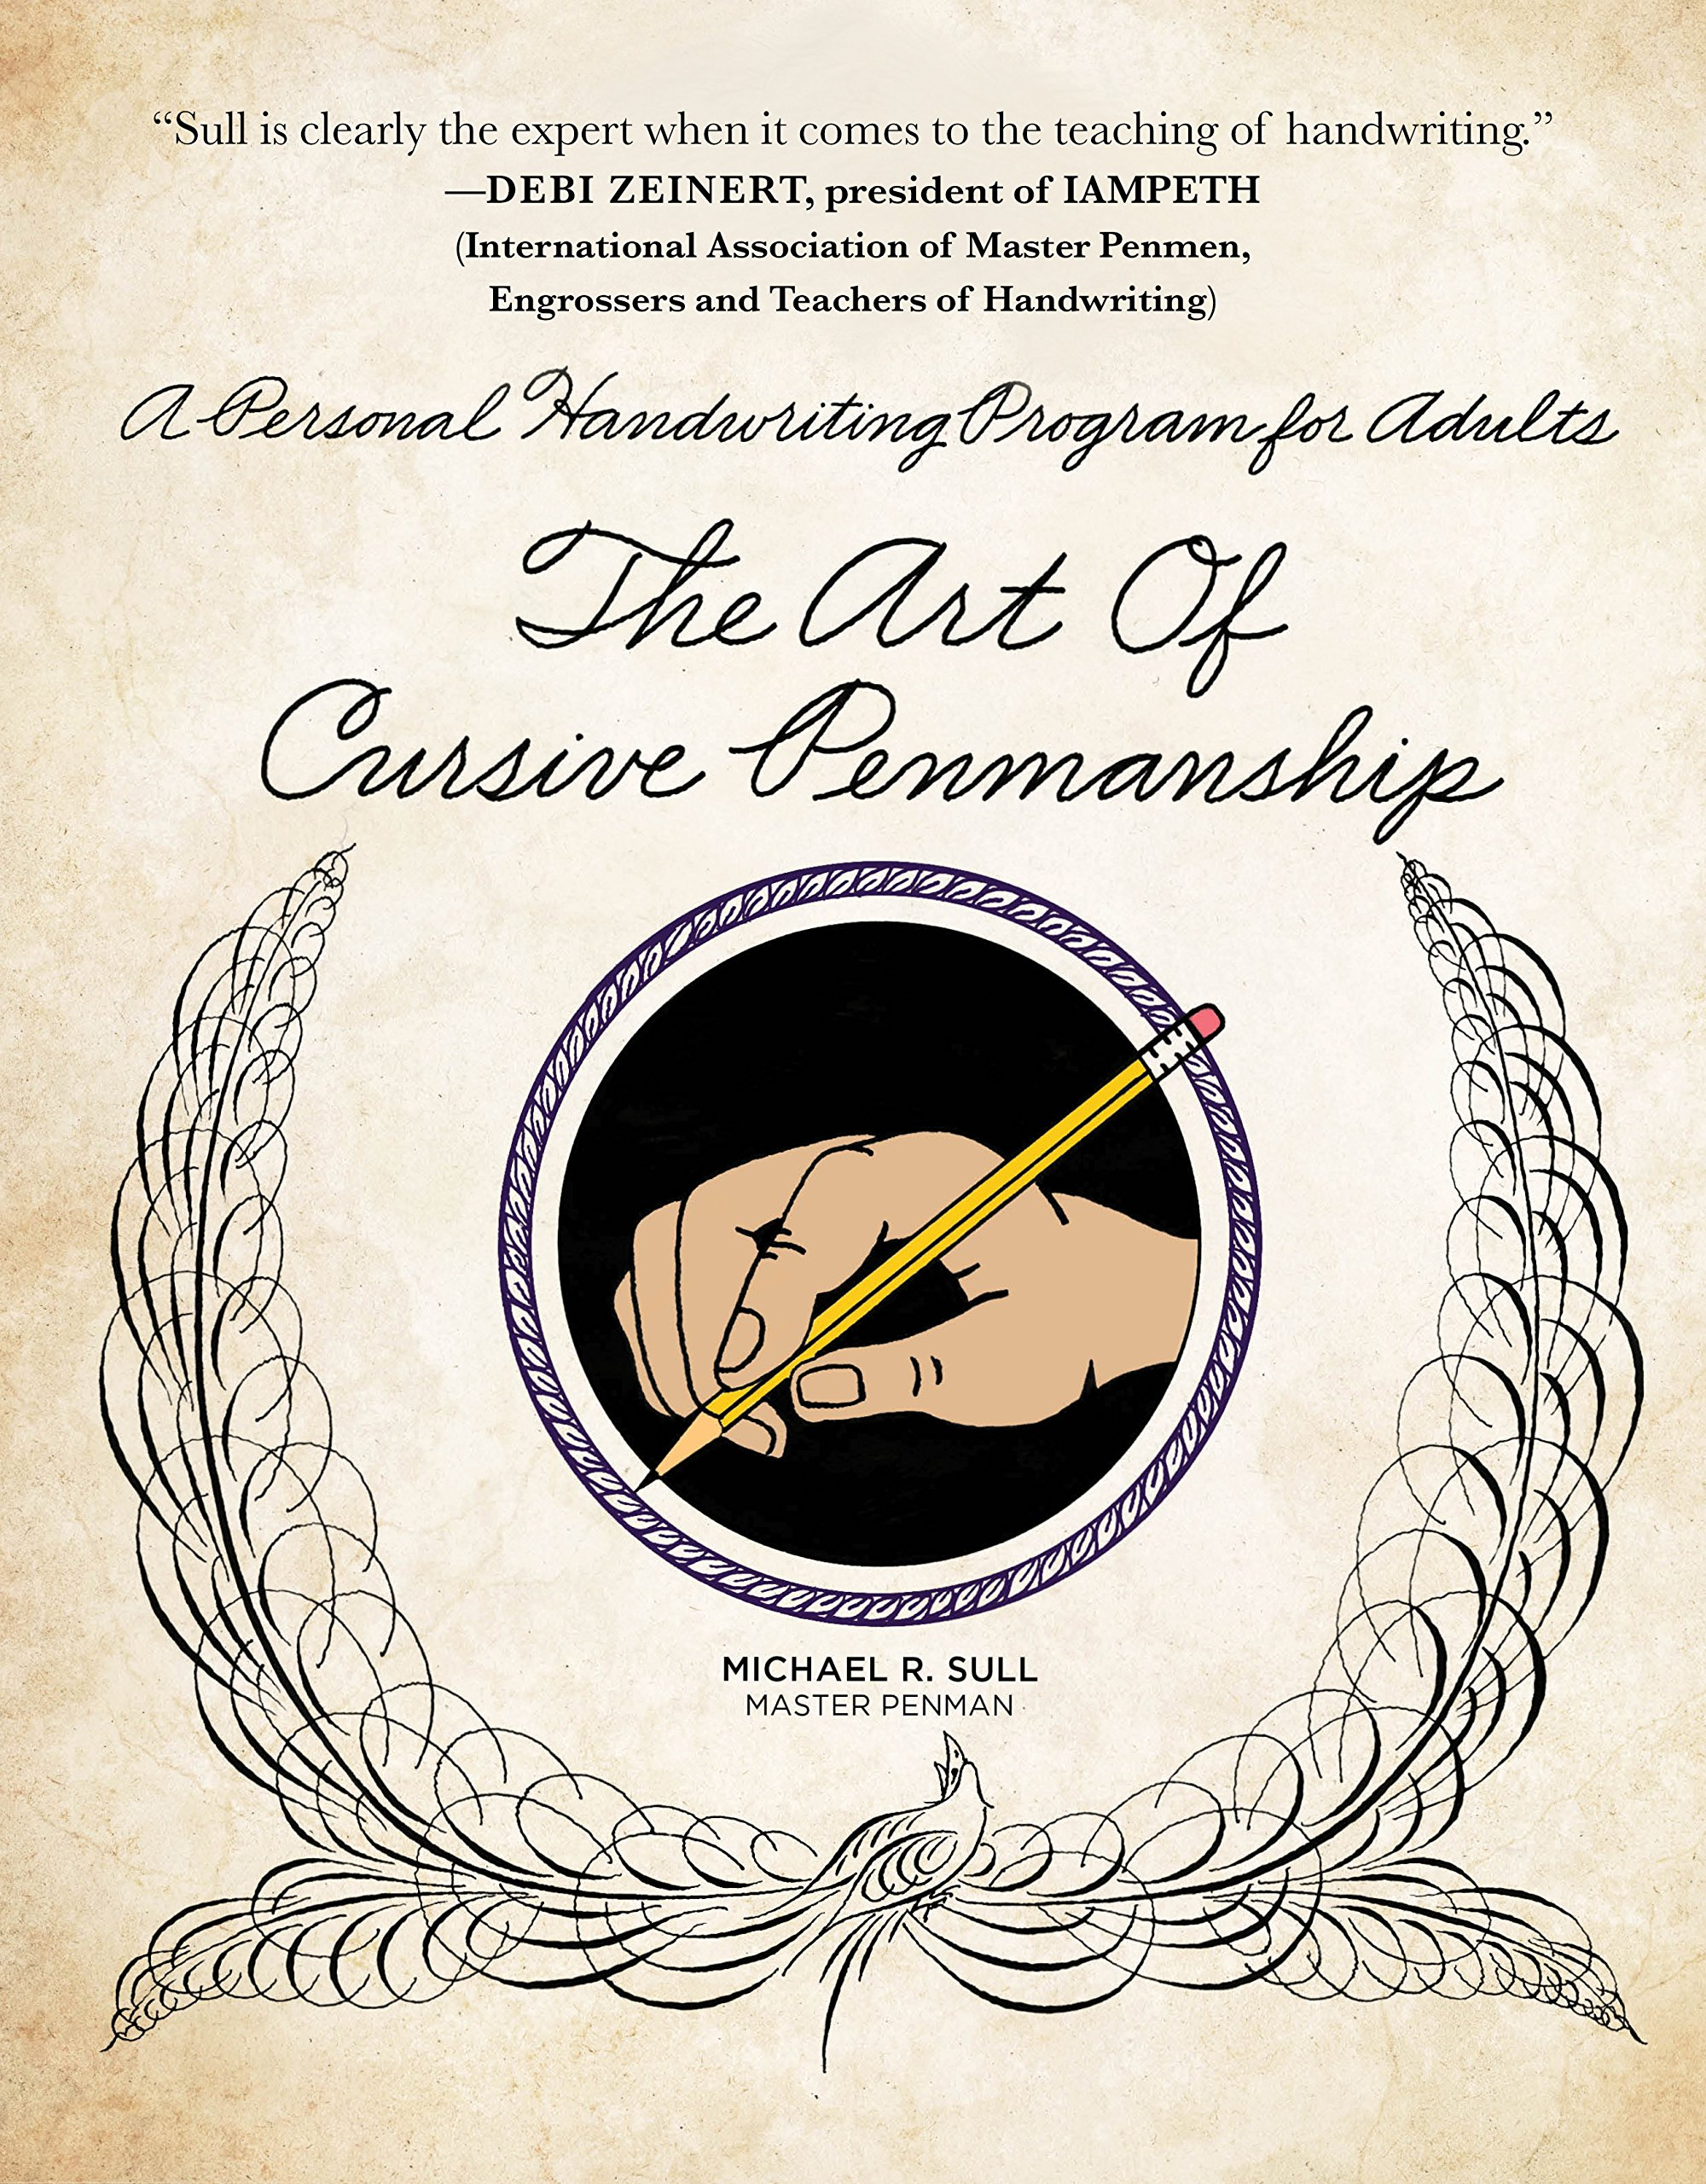 Download The Art of Cursive Penmanship: A Personal Handwriting Program for Adults pdf